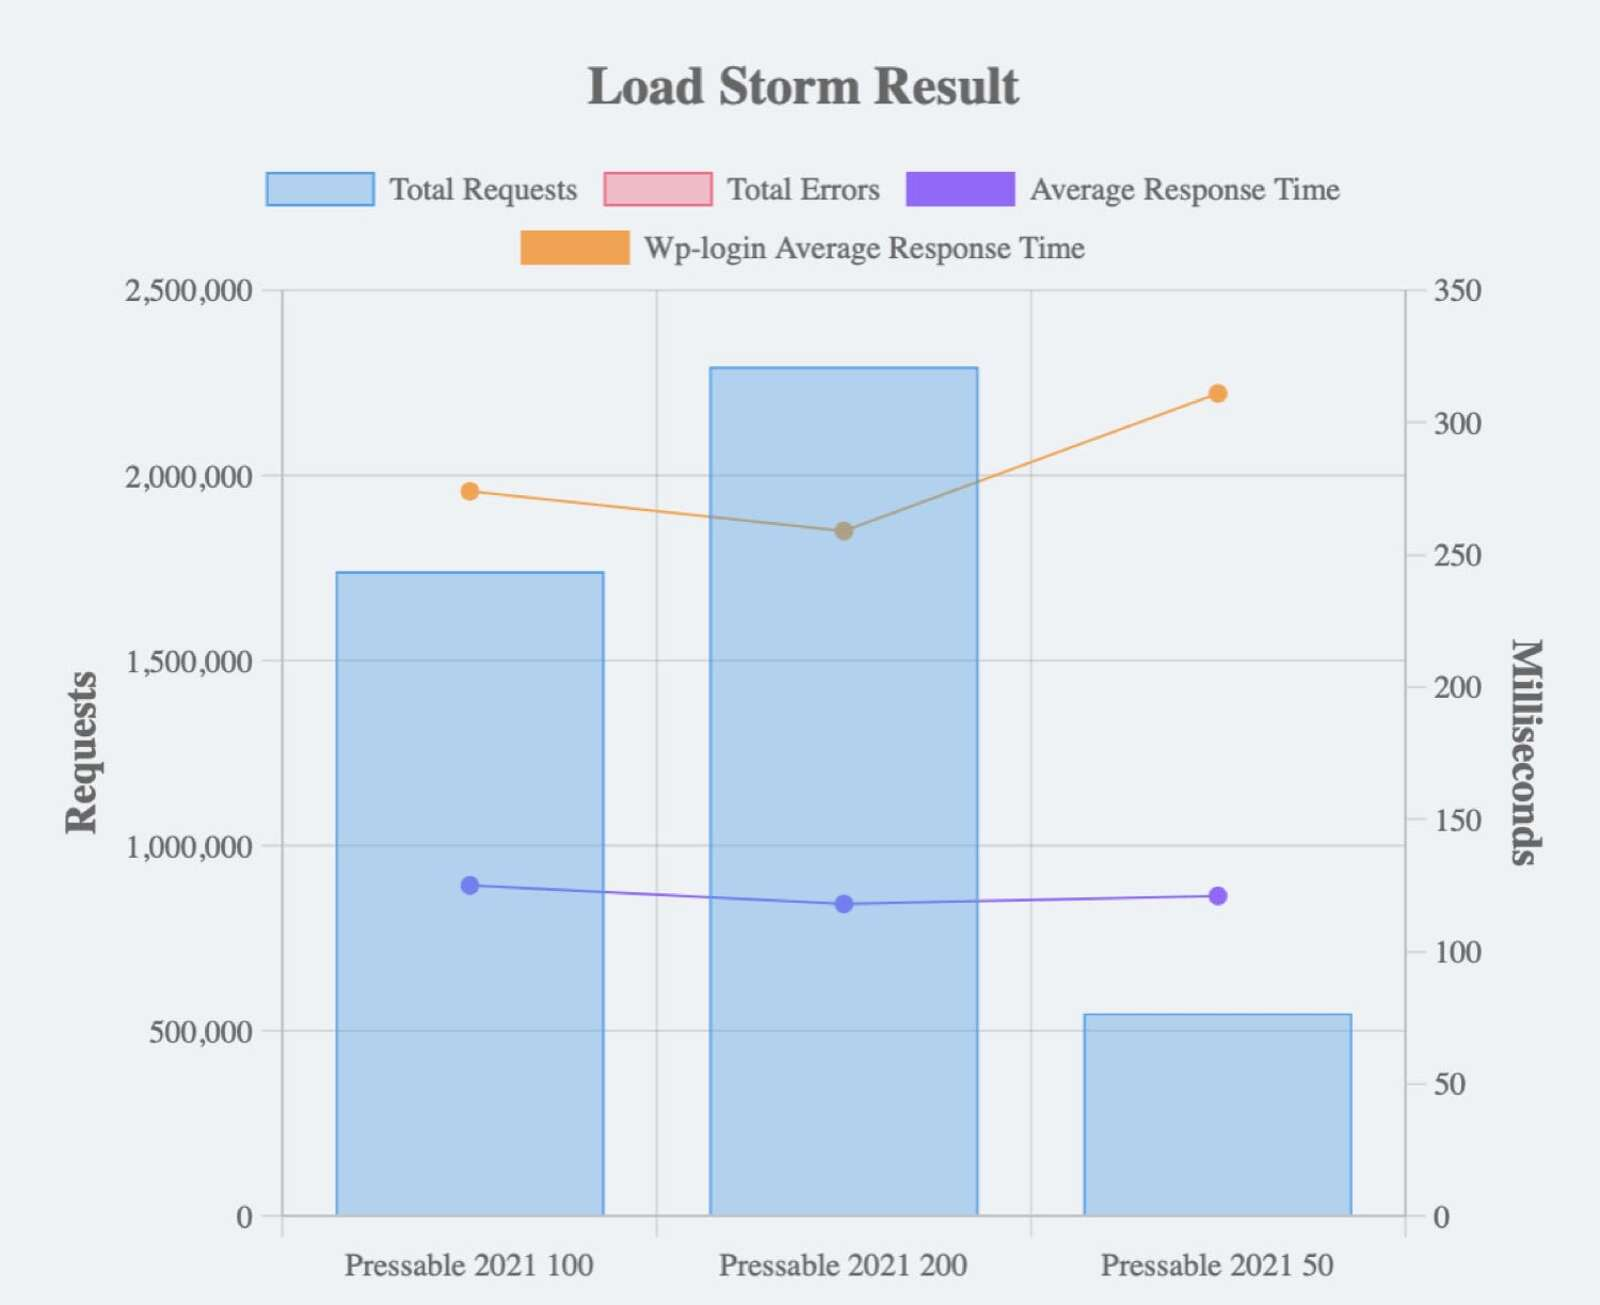 Pressable Load Storm Results